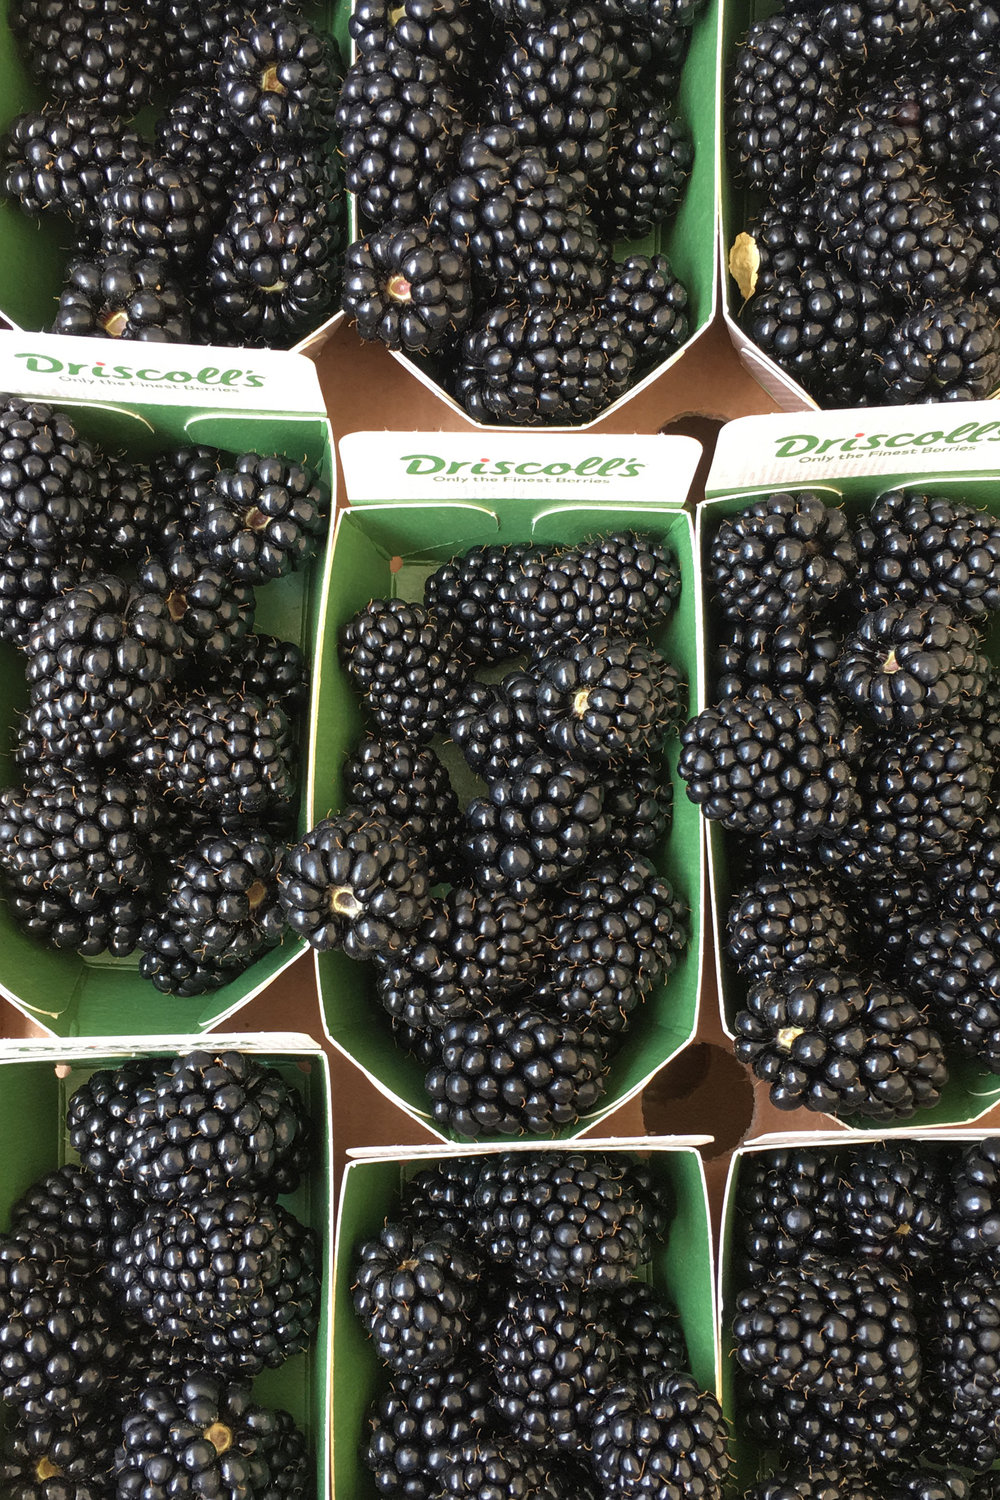 blackberries from torvehalle